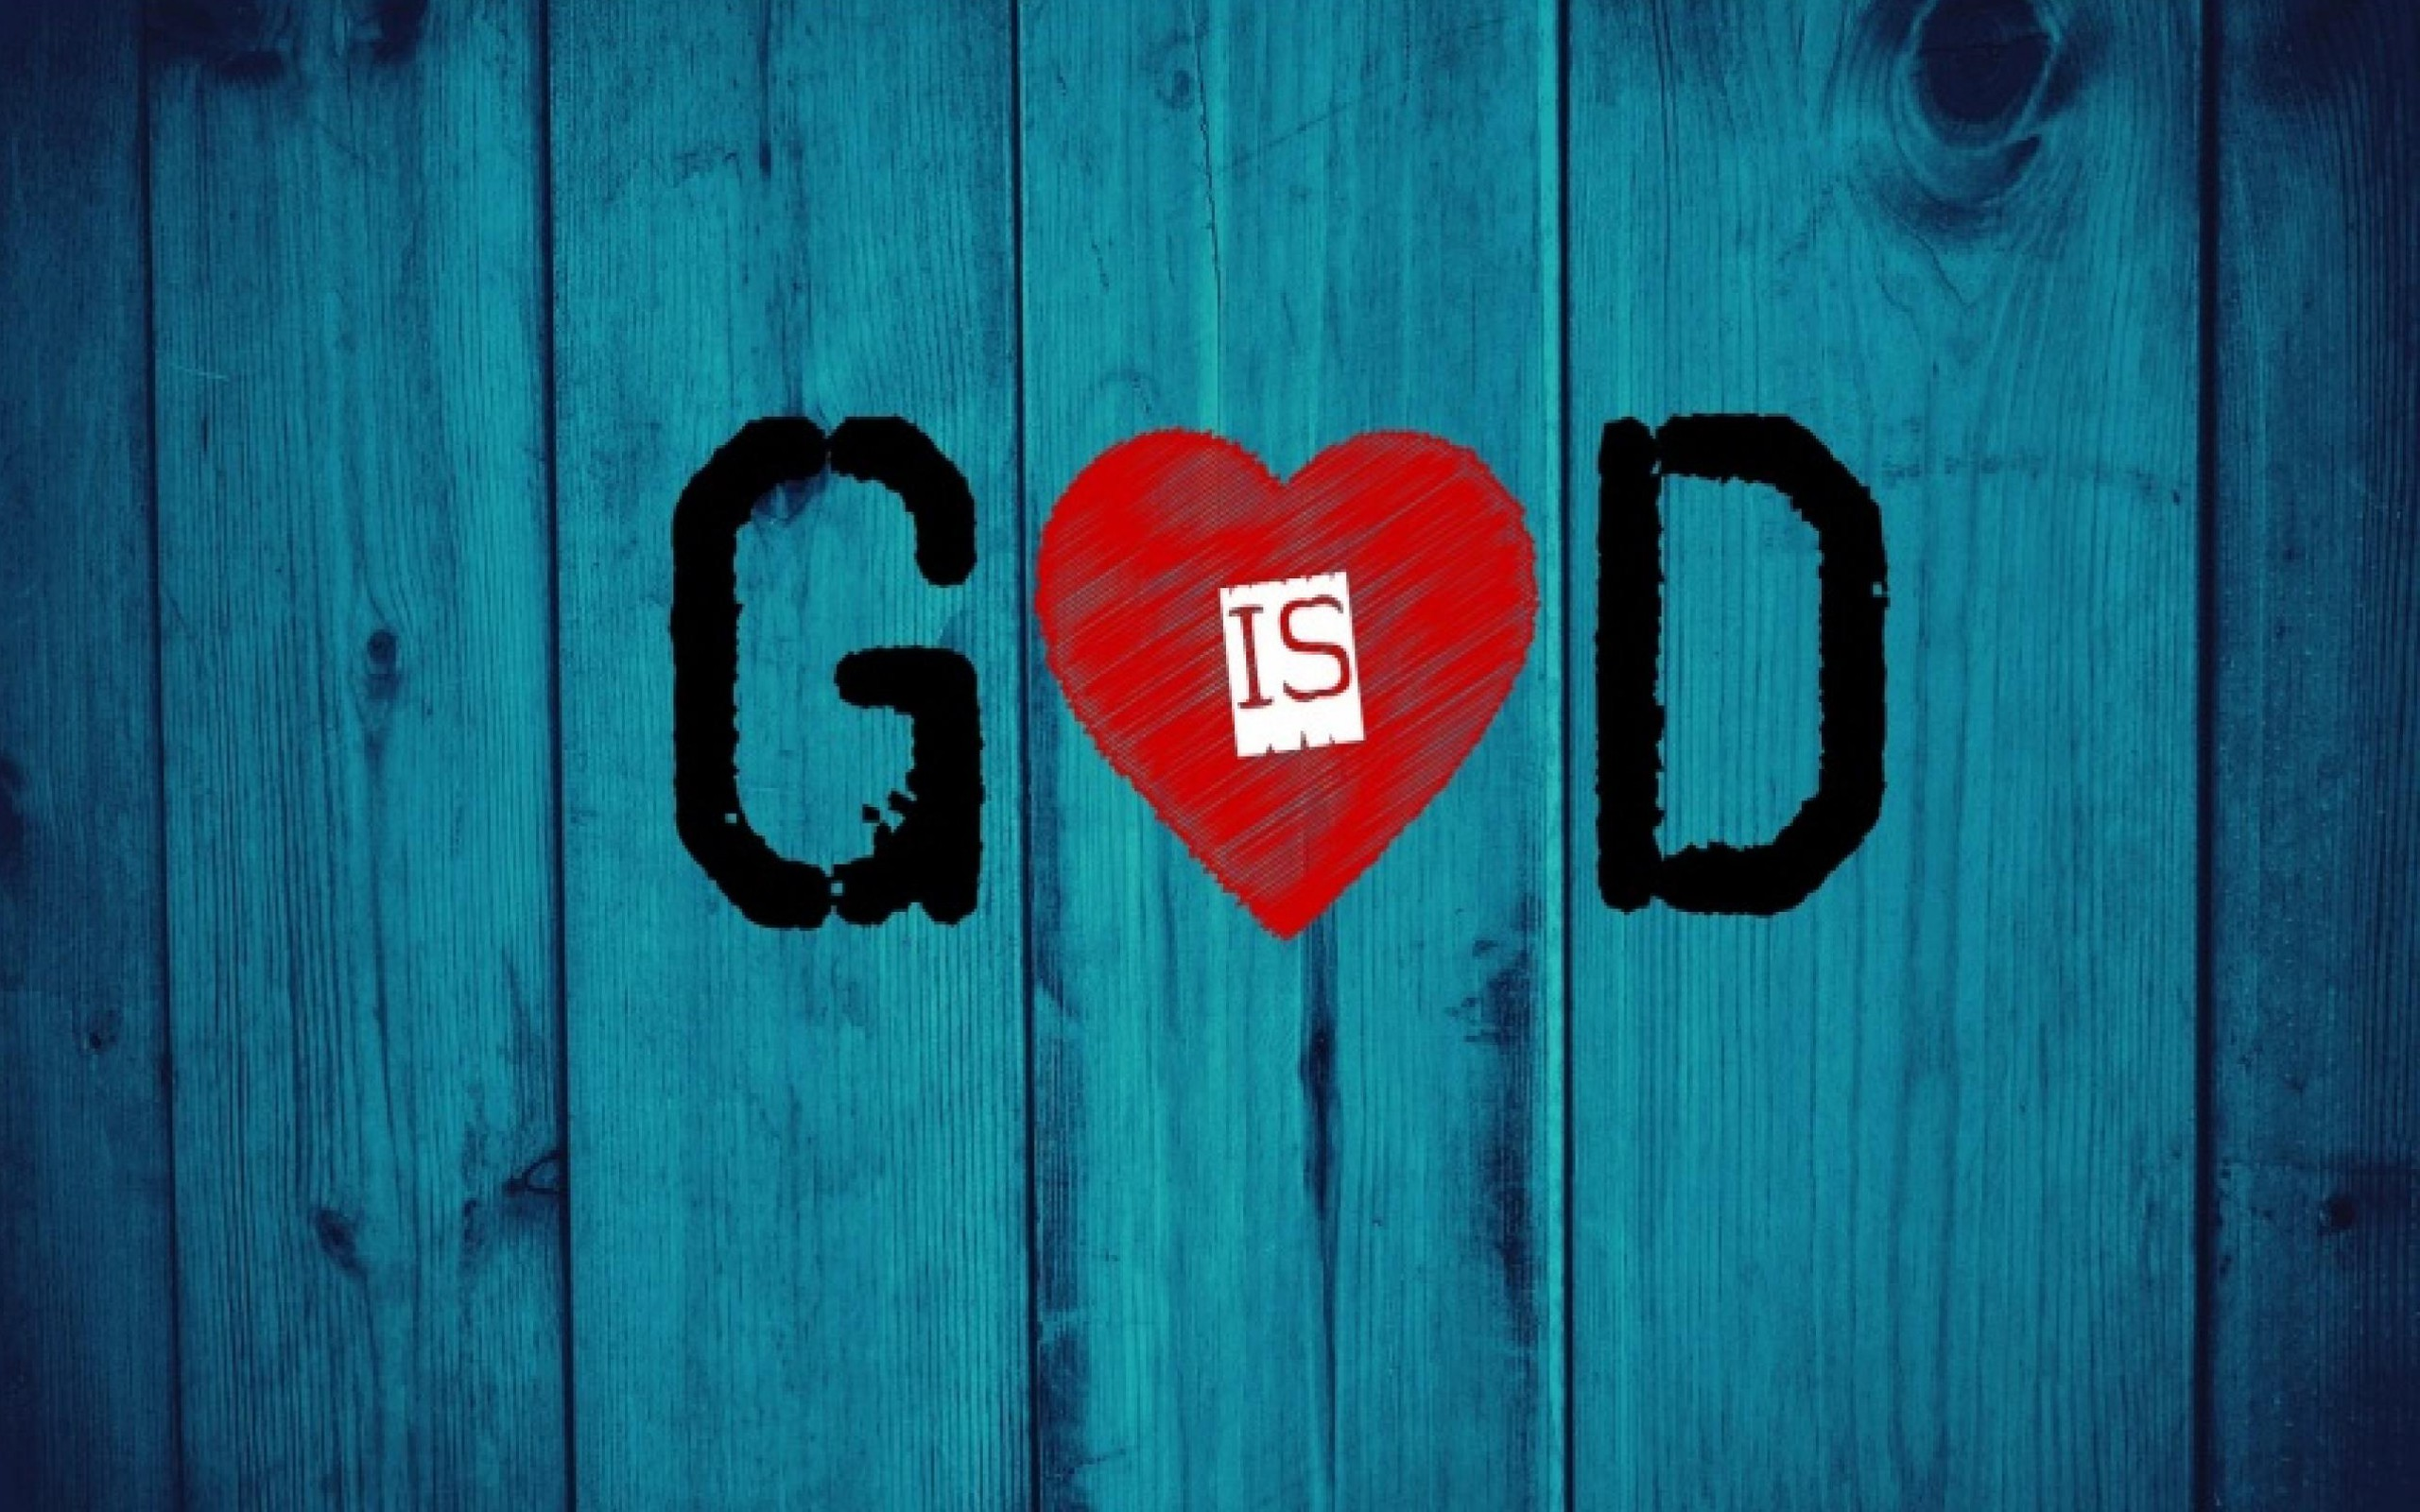 God is Love Desktop Wallpaper - WallpaperSafari